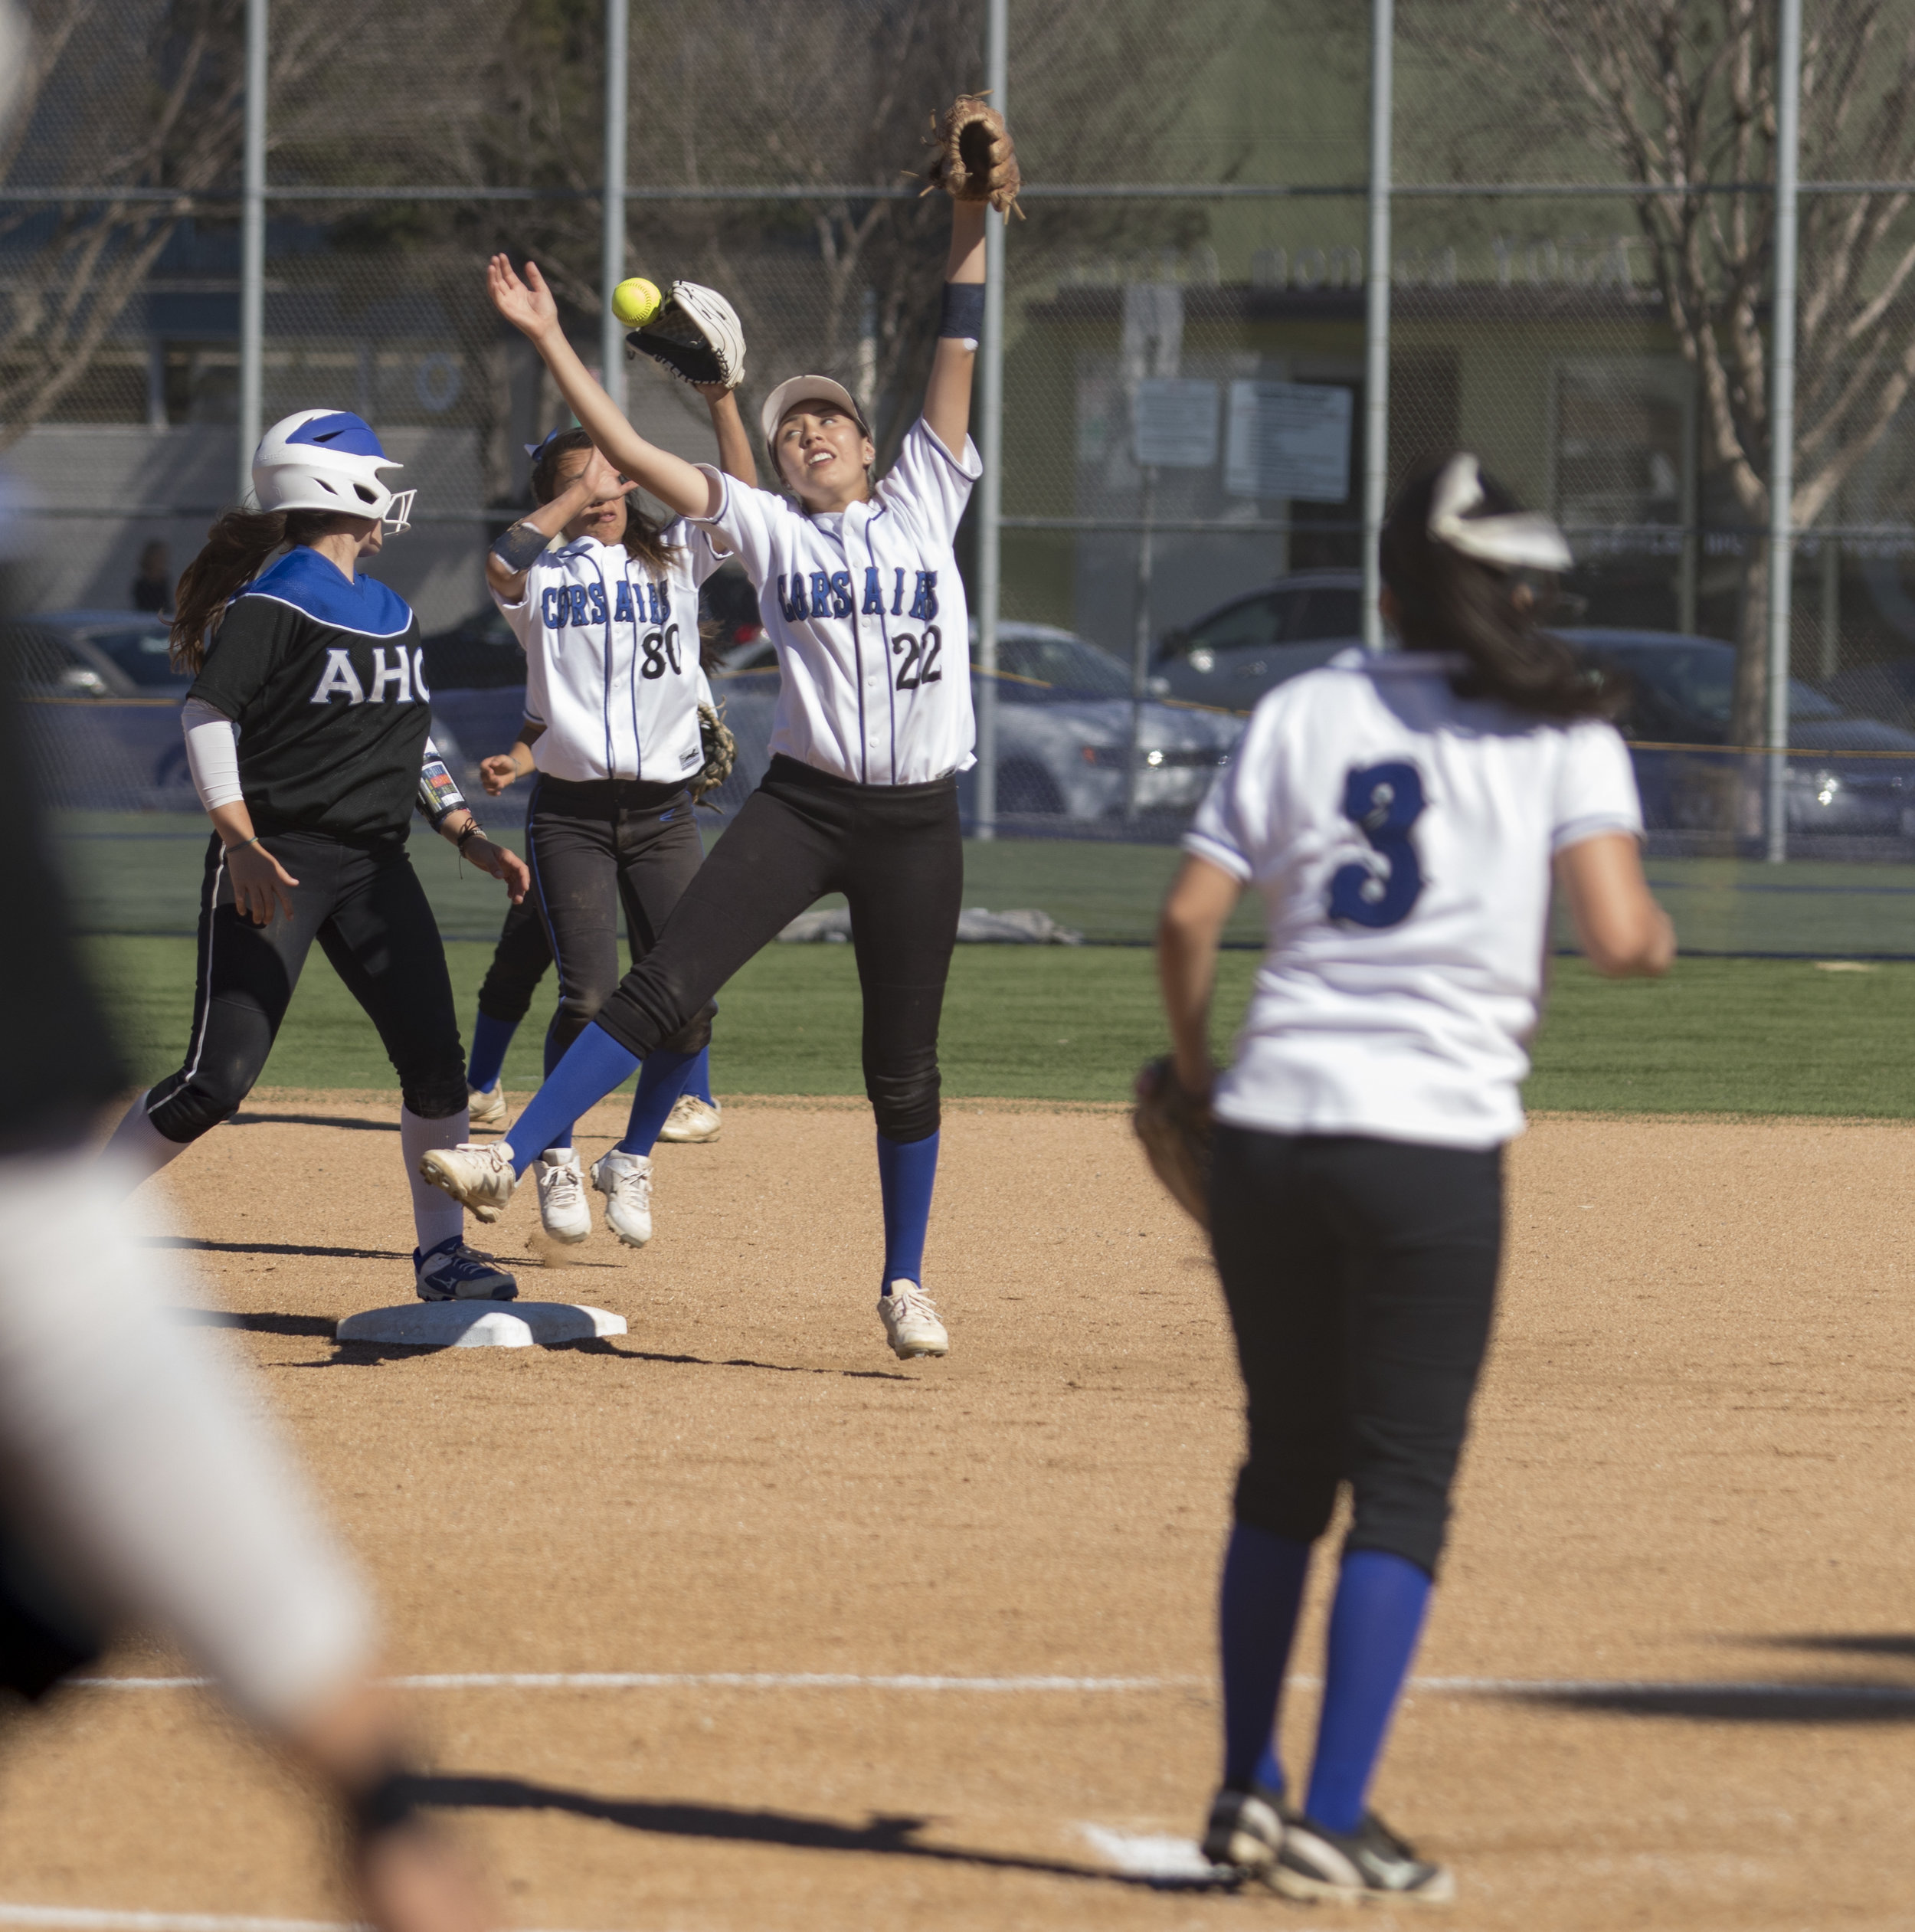 Santa Monica Corsair players jumping for the ball during Tuesday, March 27, 2018, game against the Allan Hancock Bulldogs at John Adams Middle School in Santa Monica, California. The Corsair fell 8-1 to the Bulldogs and are now 1-4 in their conference. (Brian Quiroz // Staff Writer)